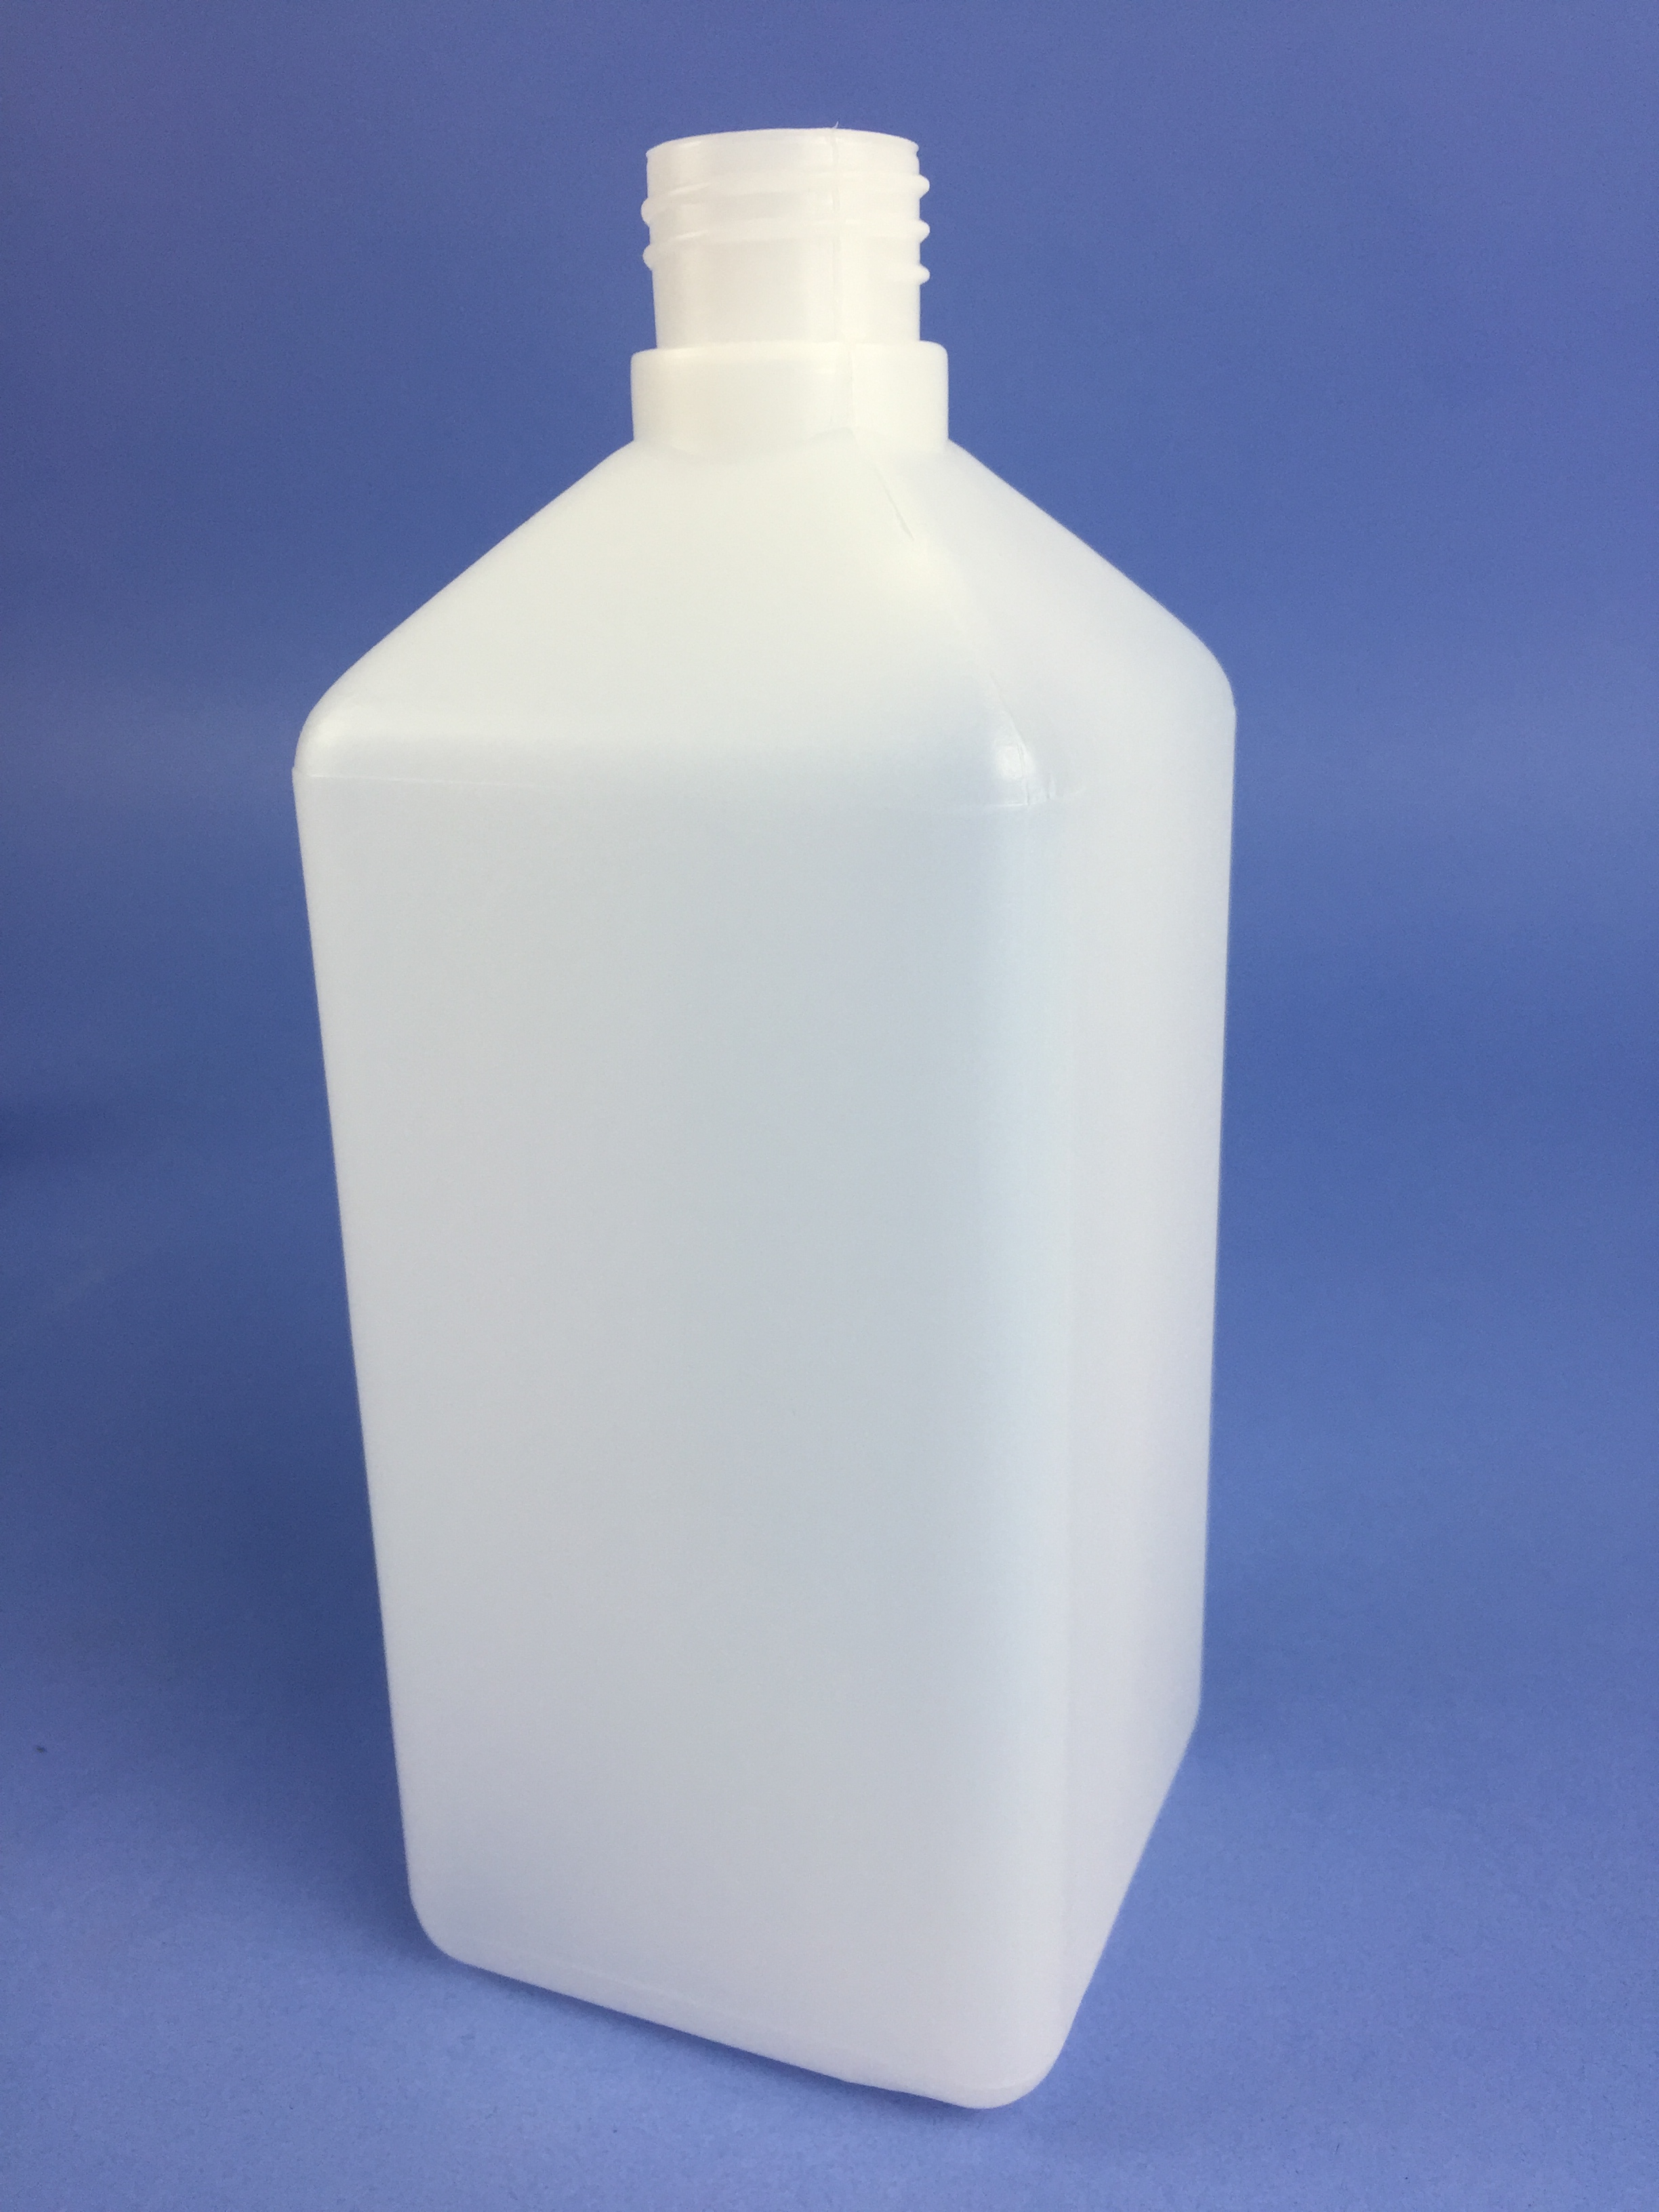 Plastic Bottle 1000ml Clear Square Hdpe Narrow Neck S100s